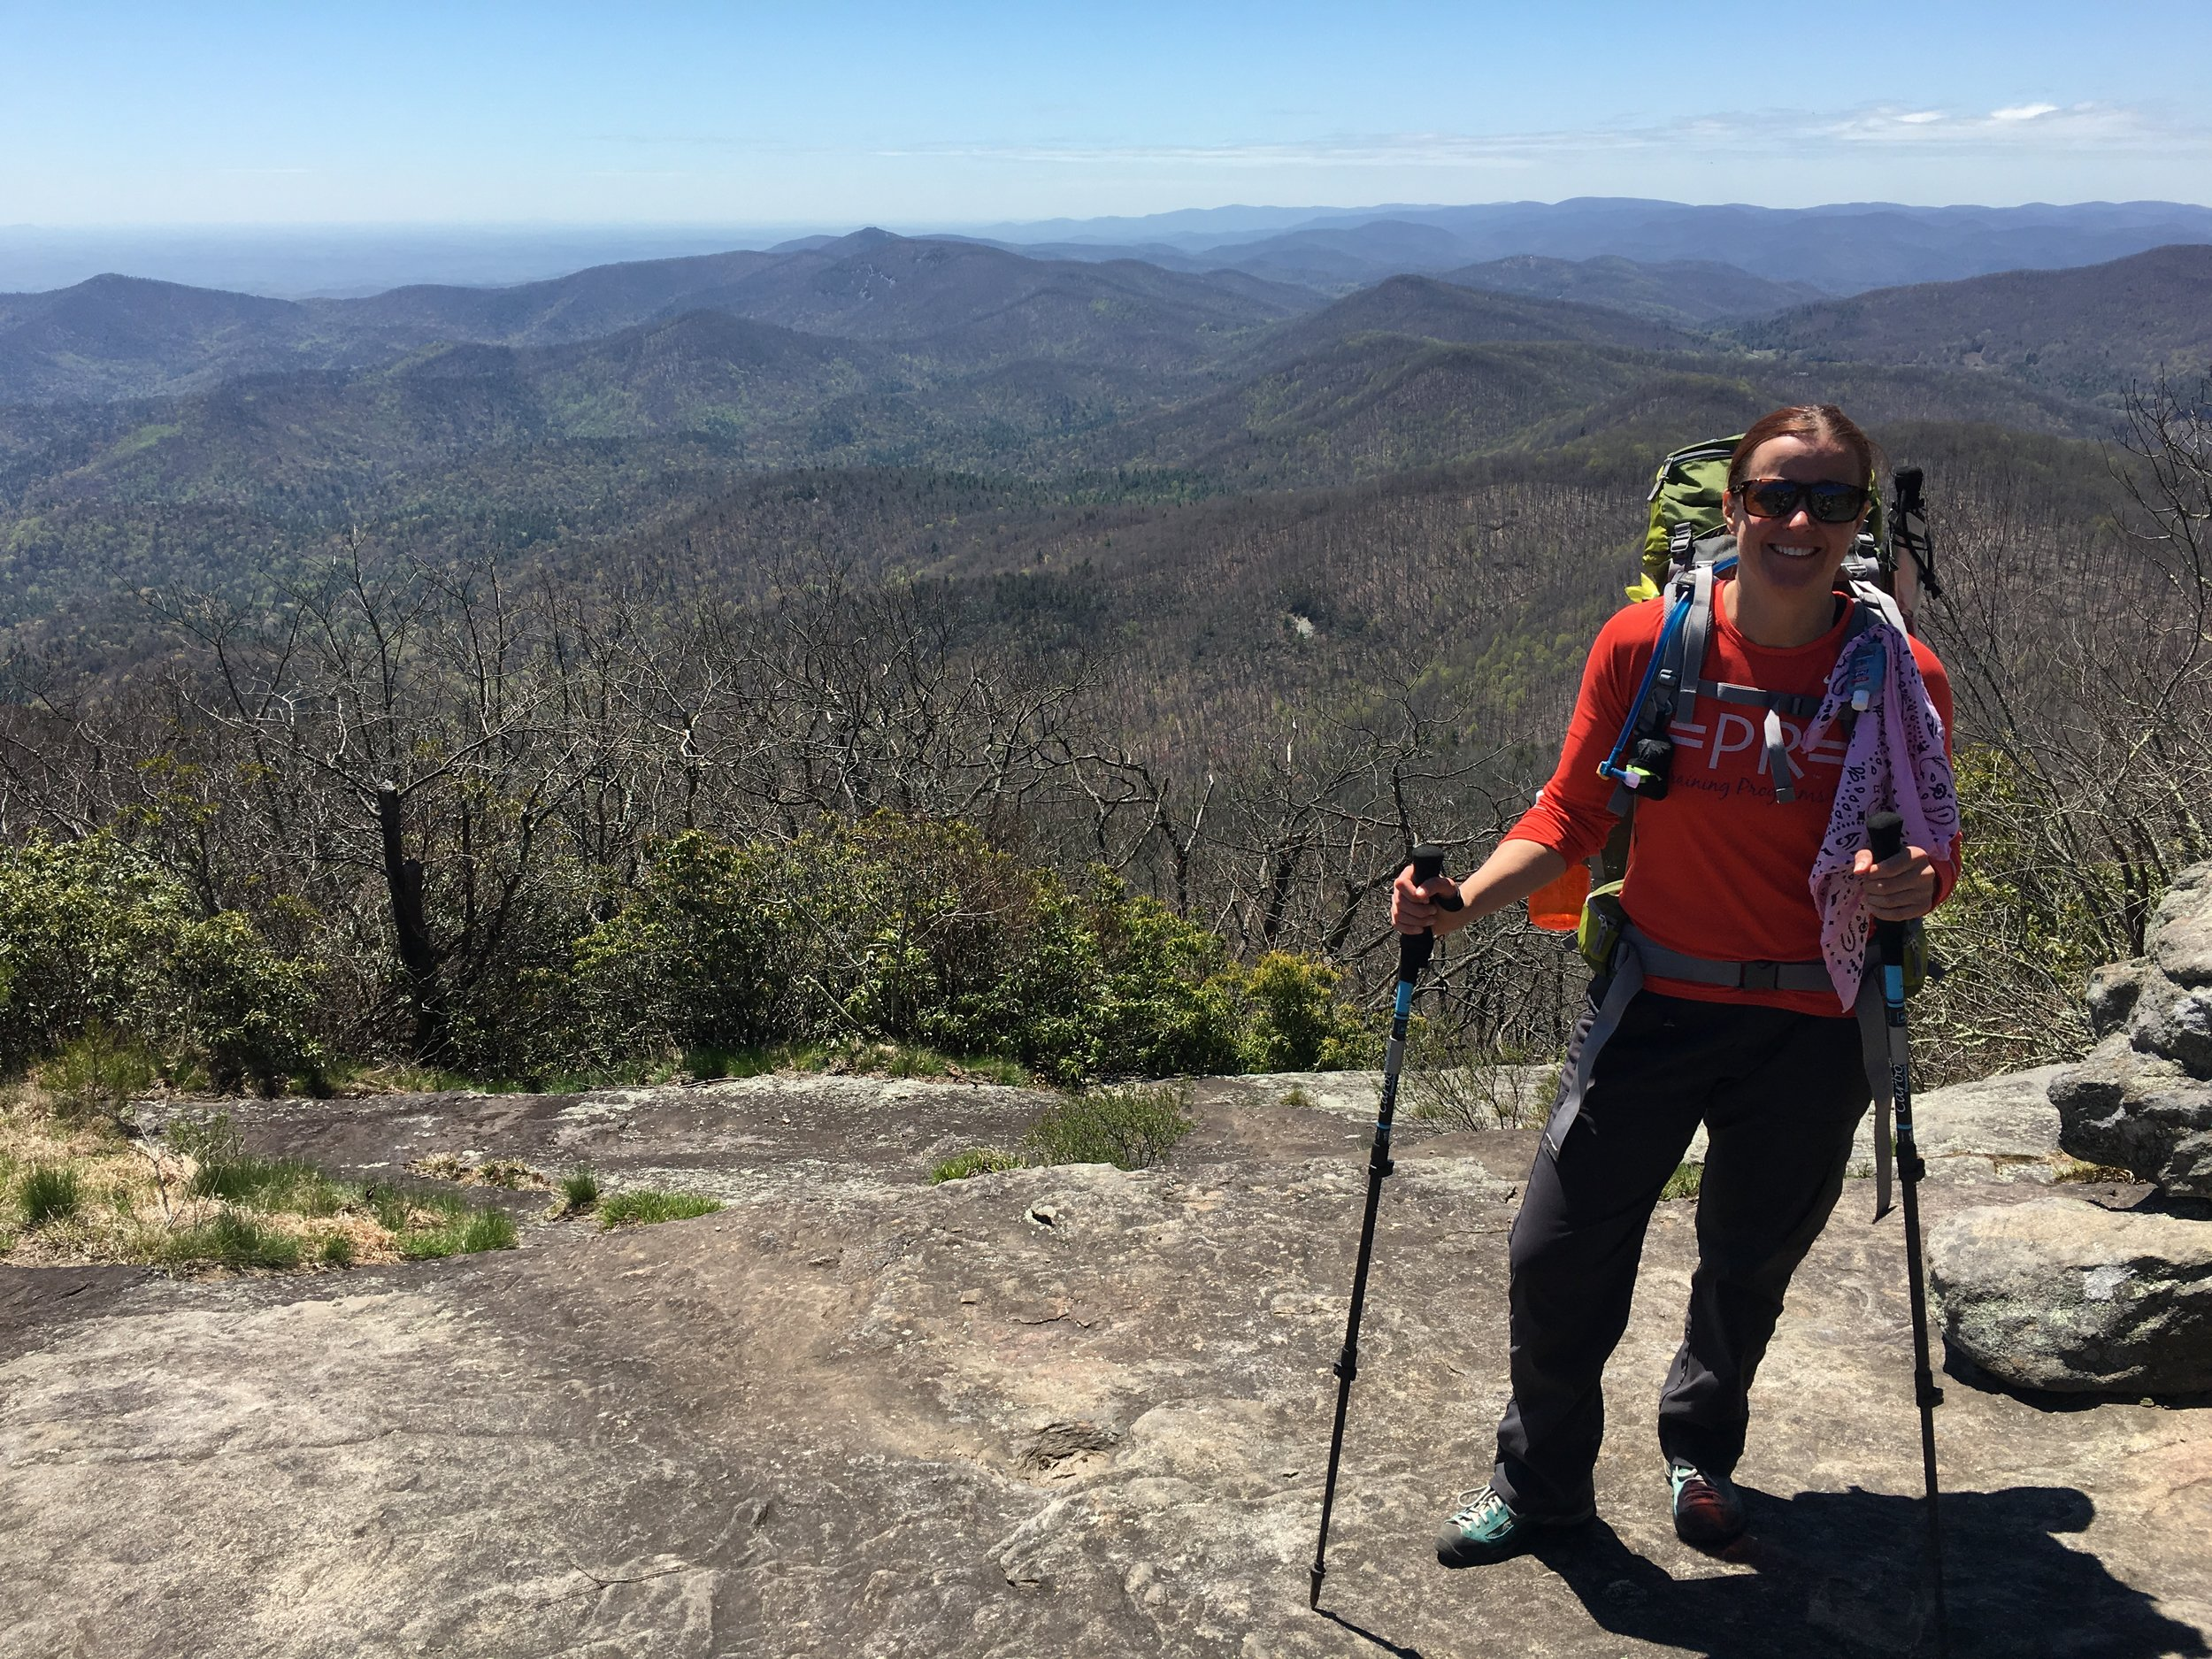 """ I Quit My Job at 43 to Hike the Appalachian Trail "" ( Prevention )  Another gnat buzzes in my ear, wings whirring like tiny helicopter blades poised to cut. I raise my arm to wave it away but really, what's the point?"